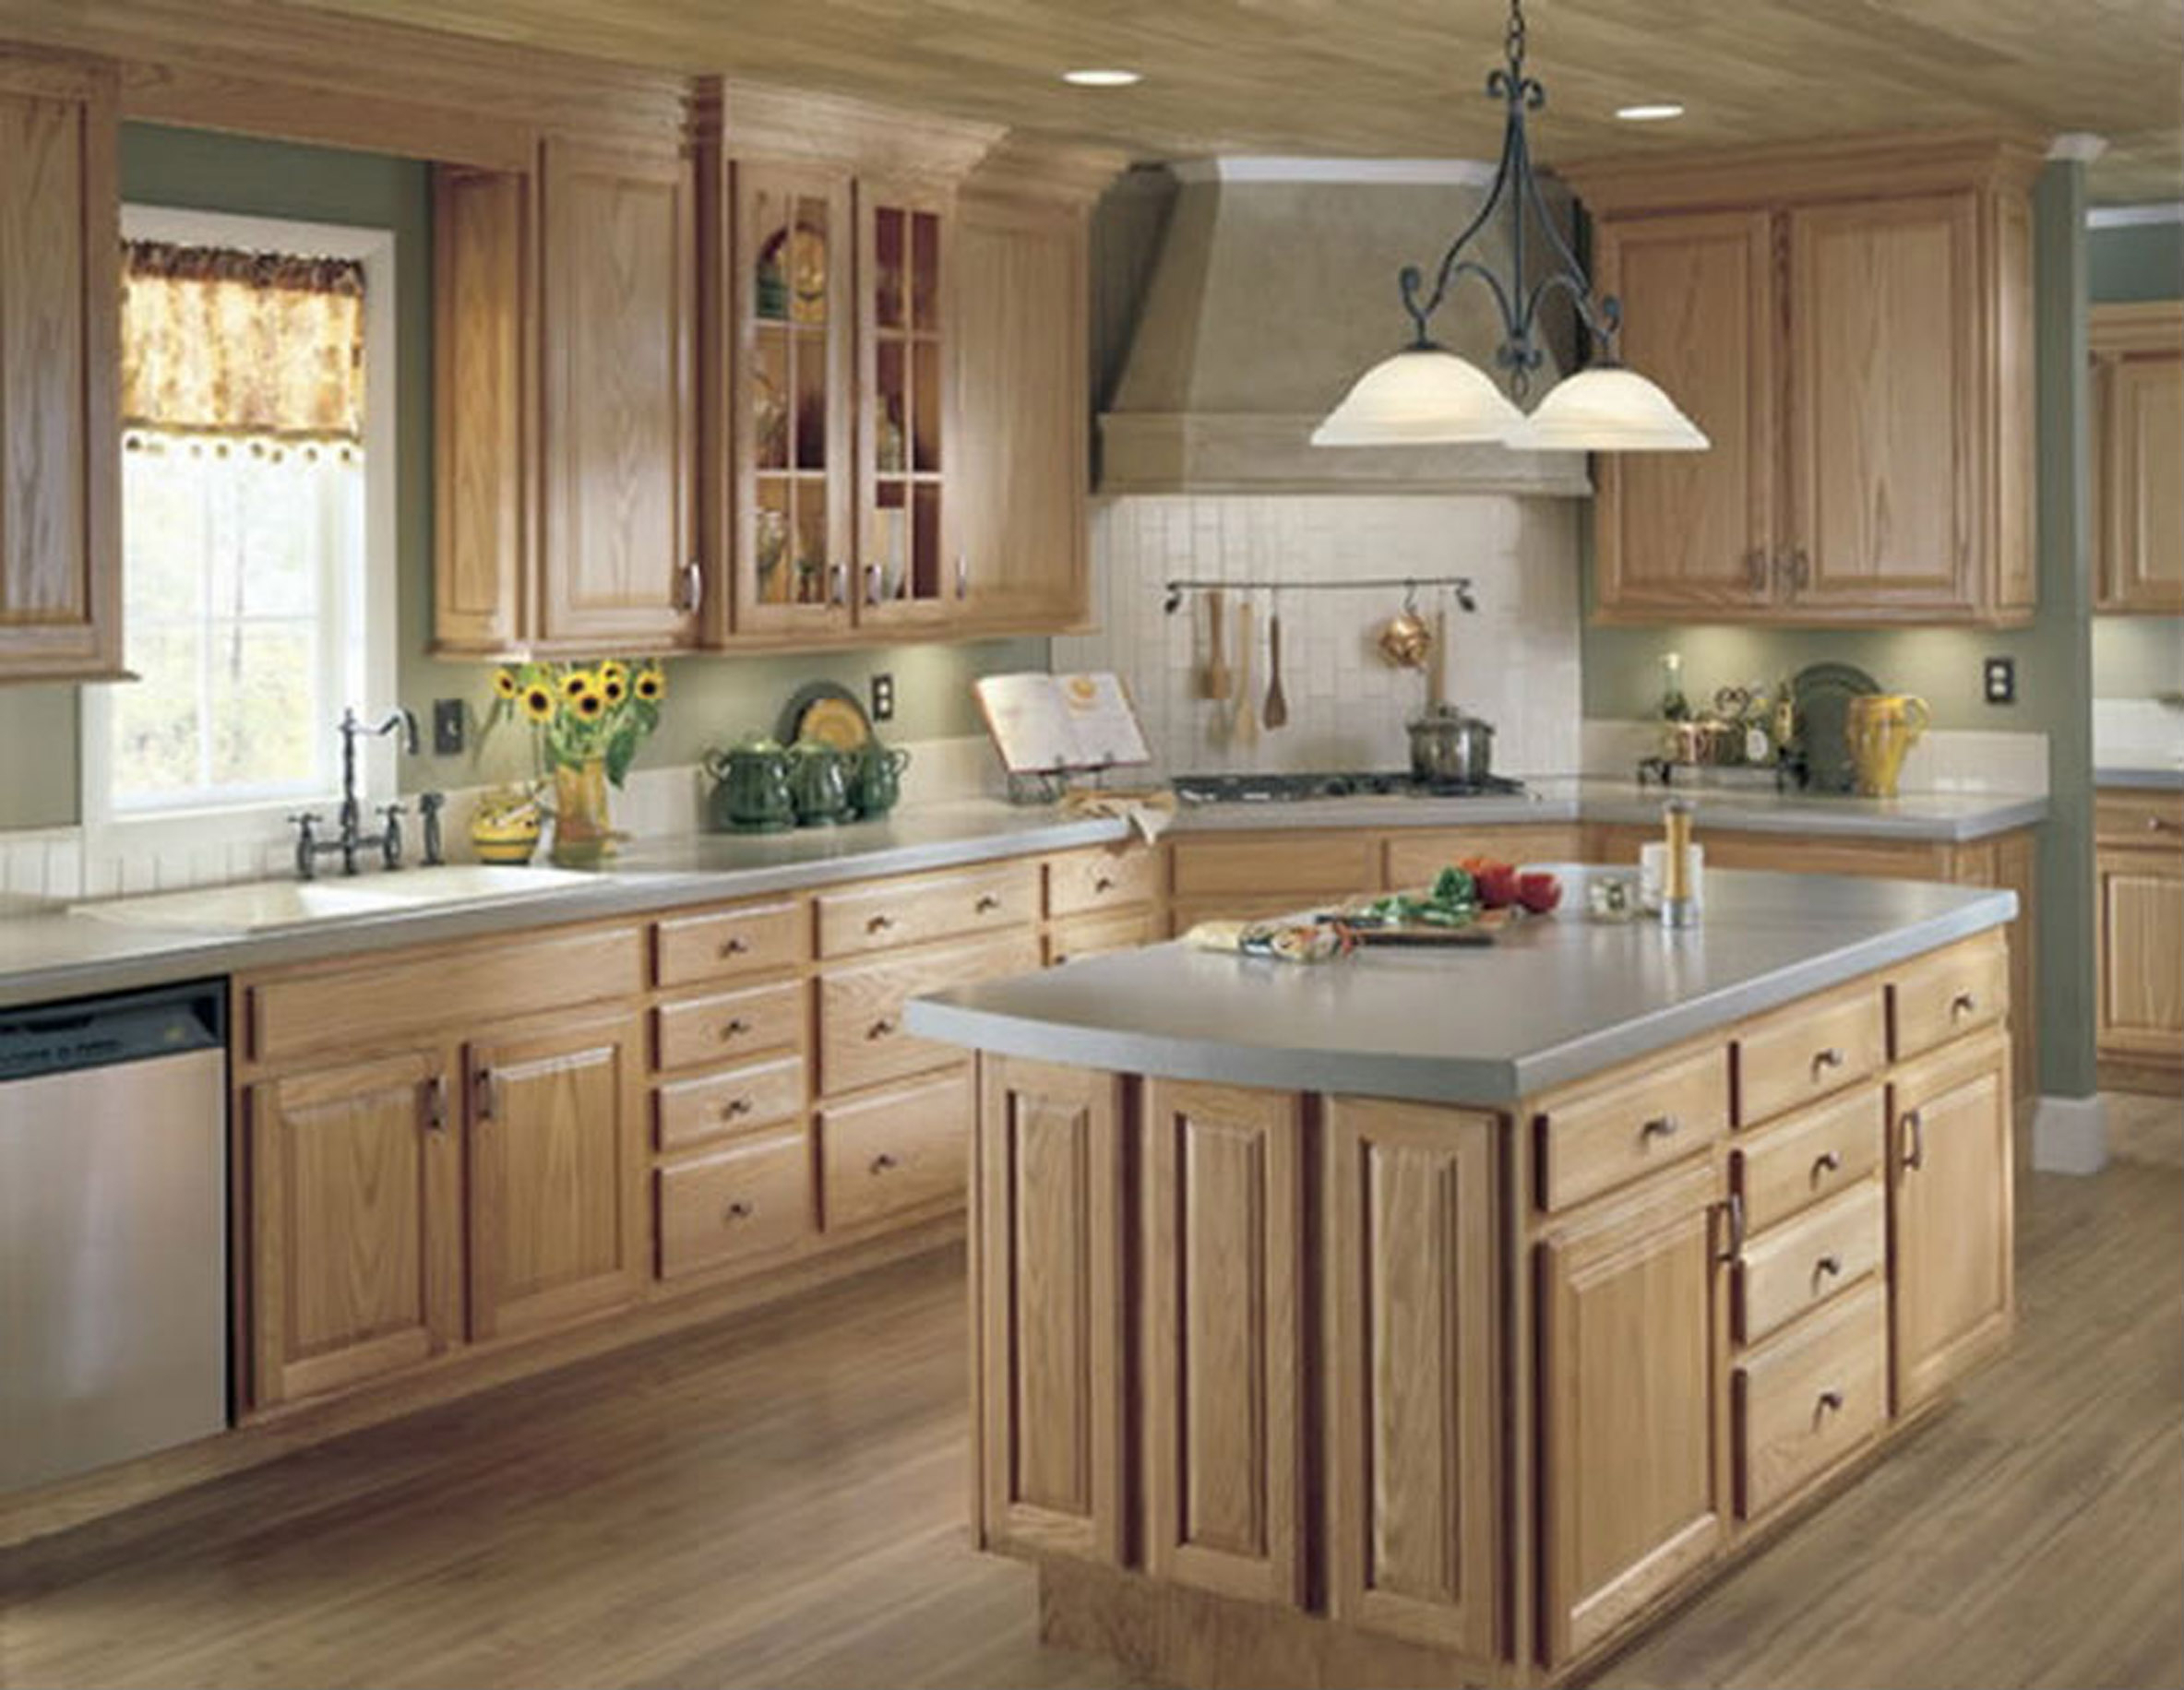 Modern Kitchen Idea With Wooden Cabinets And Island And Wooden Floor Design A Kitchen Free Online (View 13 of 31)